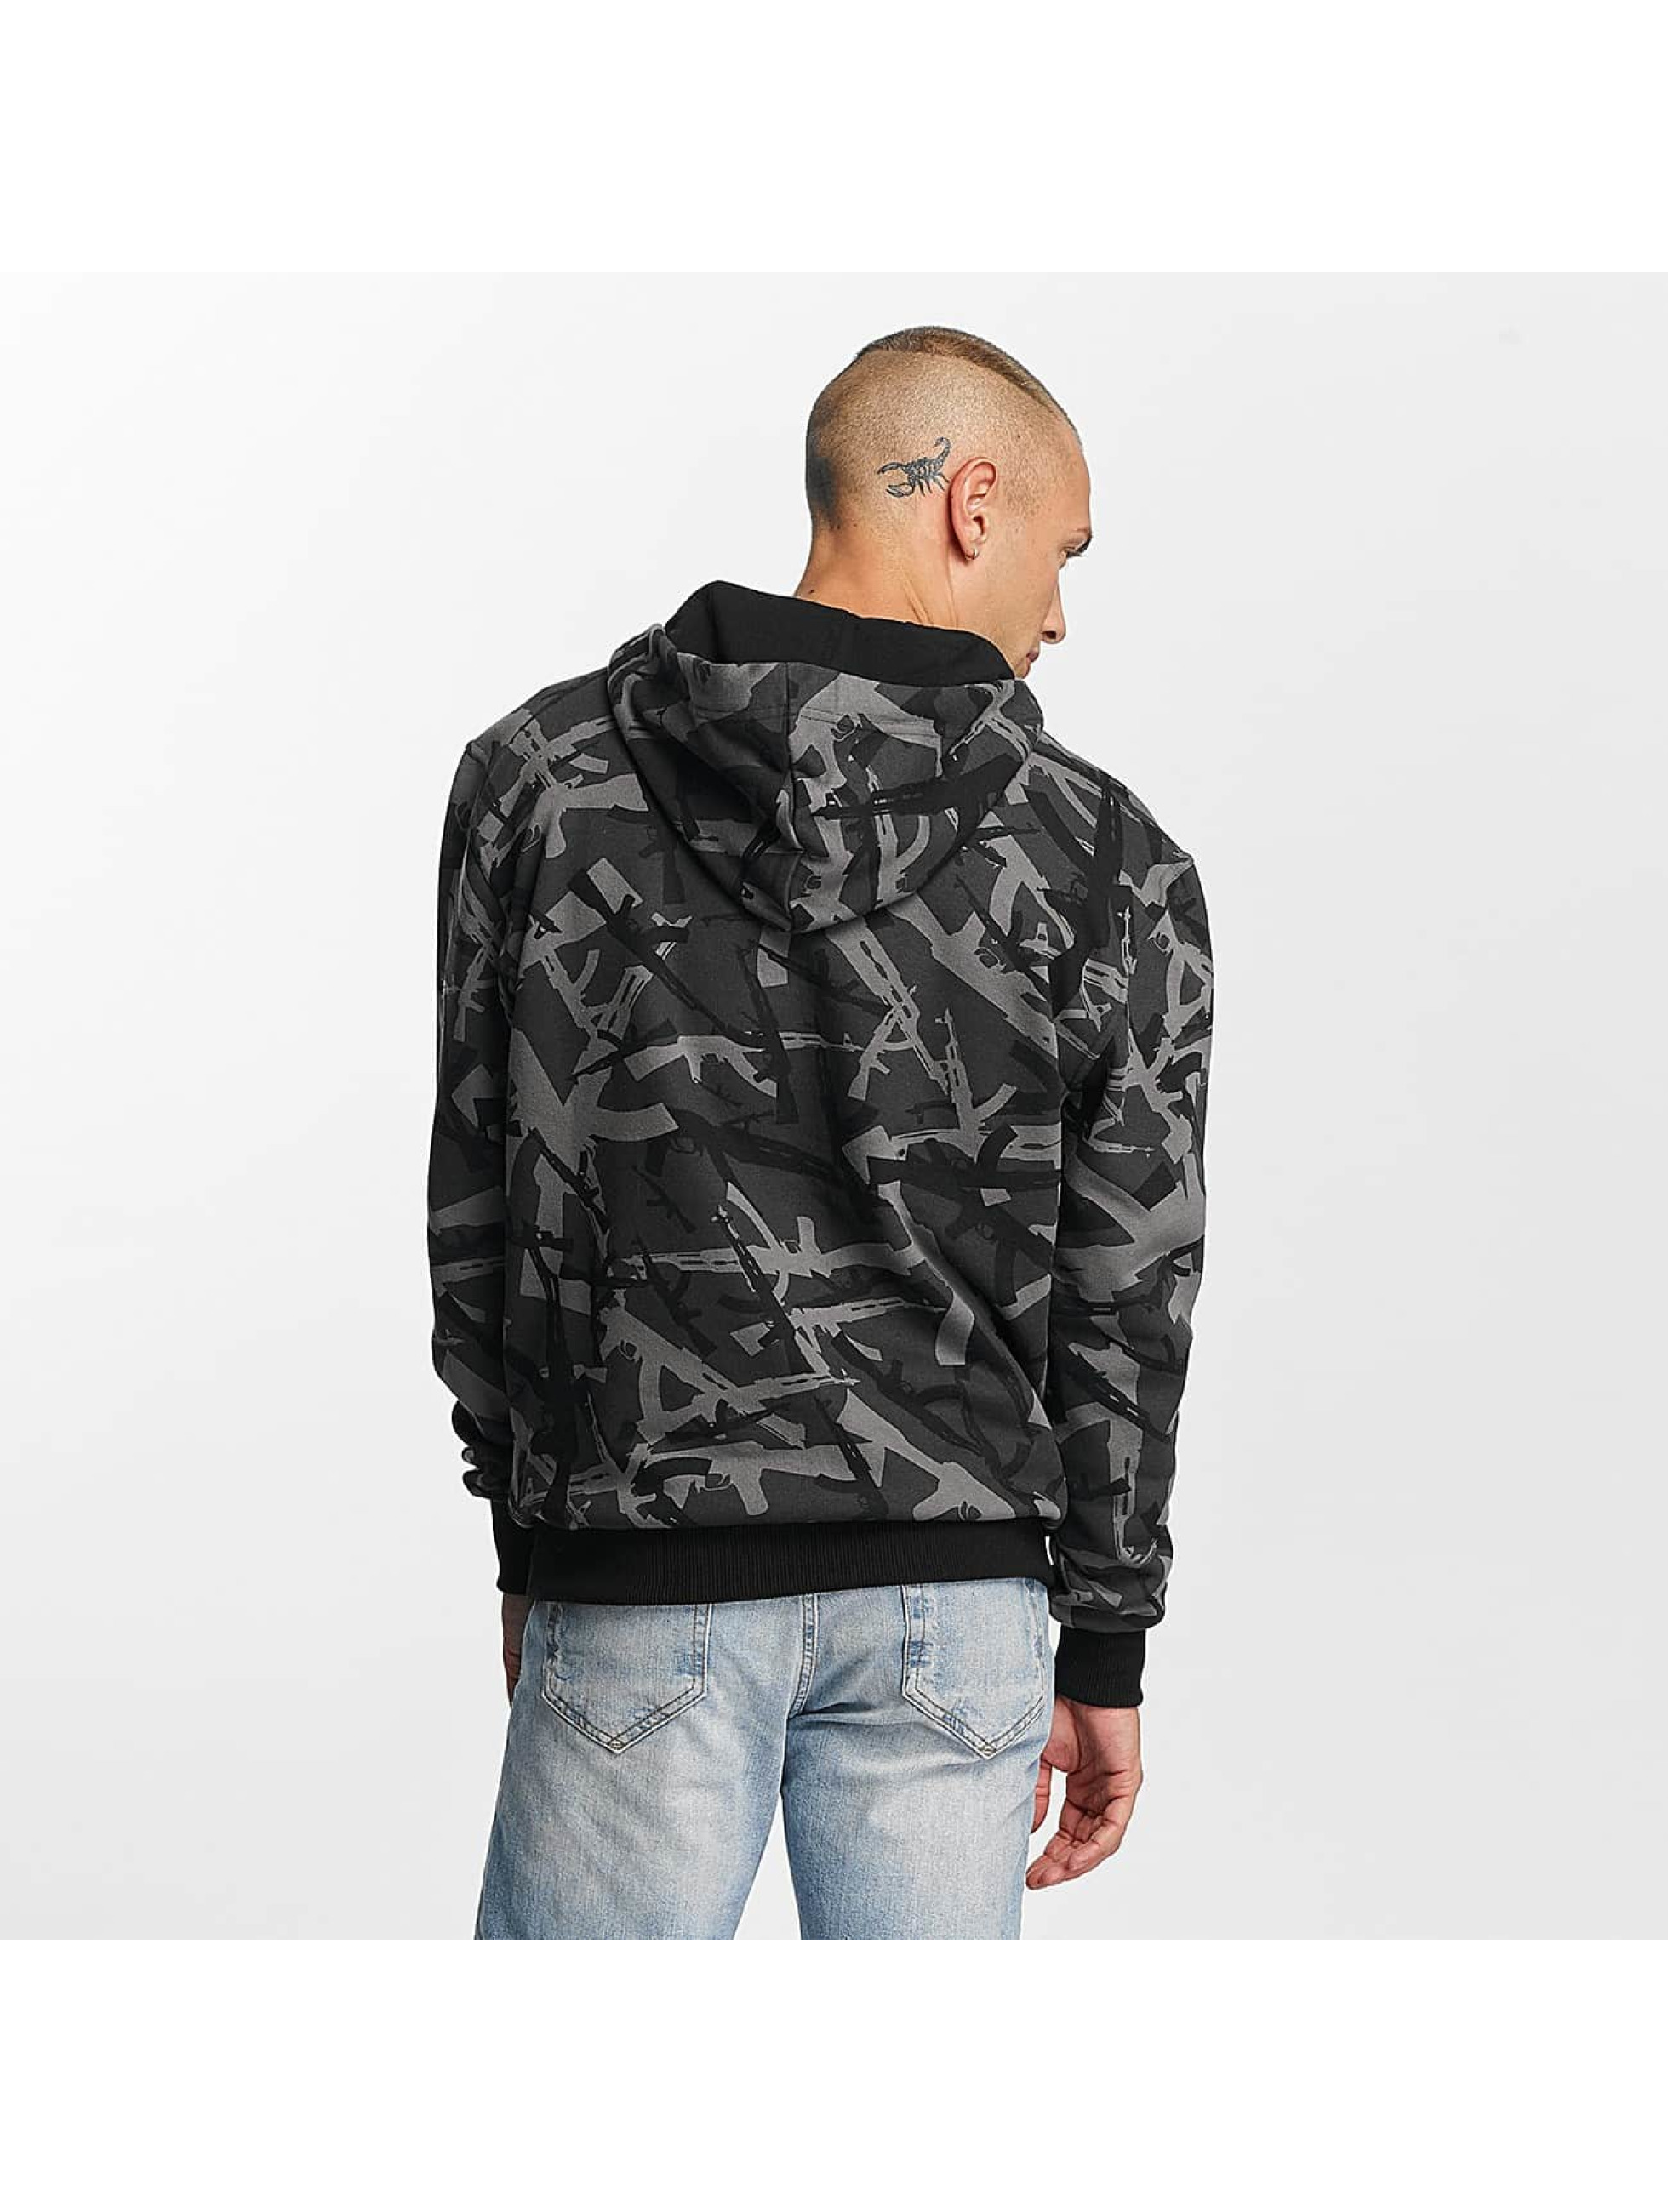 Pusher Apparel Sweat capuche AK Camo camouflage